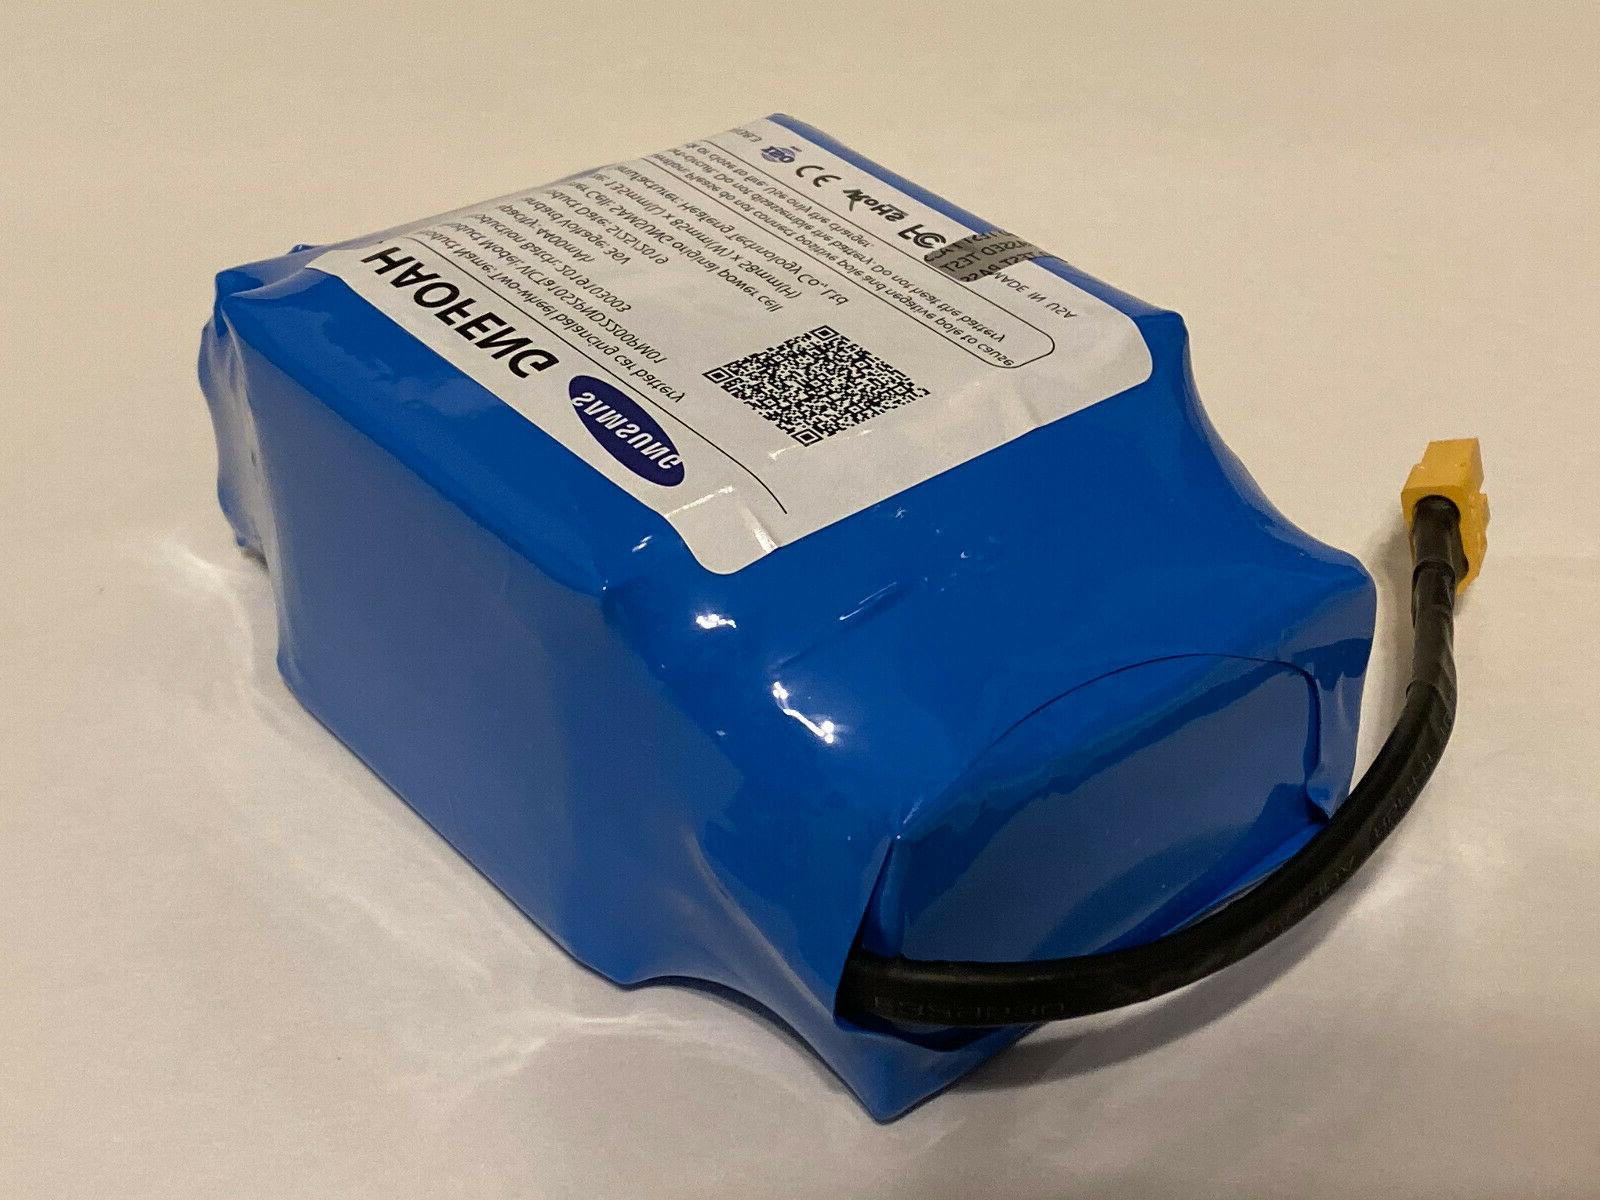 Battery For Replacement 4.4AH Lithium 6 month Warranty